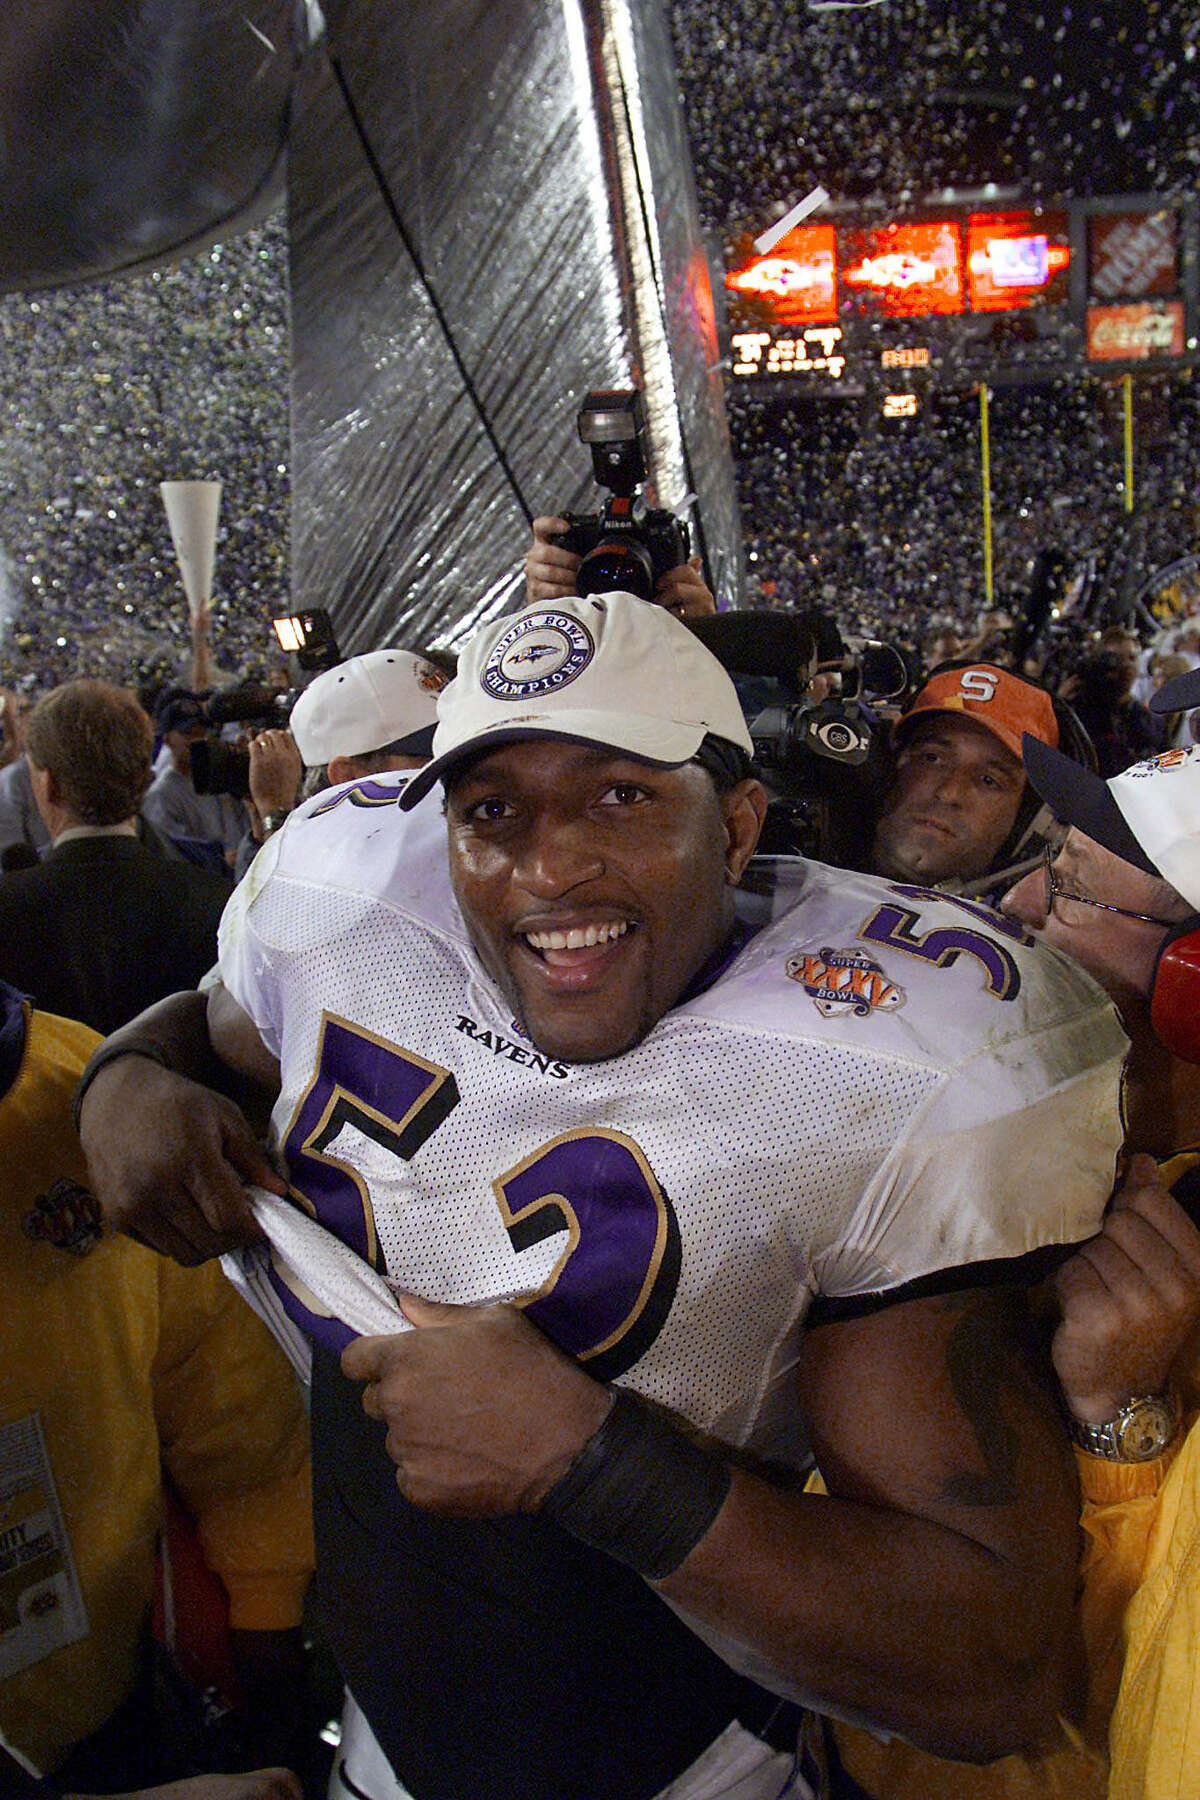 TAMPA, UNITED STATES: Ray Lewis of the Baltimore Ravens smiles after the Ravens defeated the New York Giants 34-7 in Super Bowl XXXV 28 January 2001 at Raymond James Stadium in Tampa, Florida. Lewis was named Most Valuable Player (MVP) in the Ravens victory for the NFL championship. AFP PHOTO/Jeff HAYNES (Photo credit should read JEFF HAYNES/AFP/Getty Images)